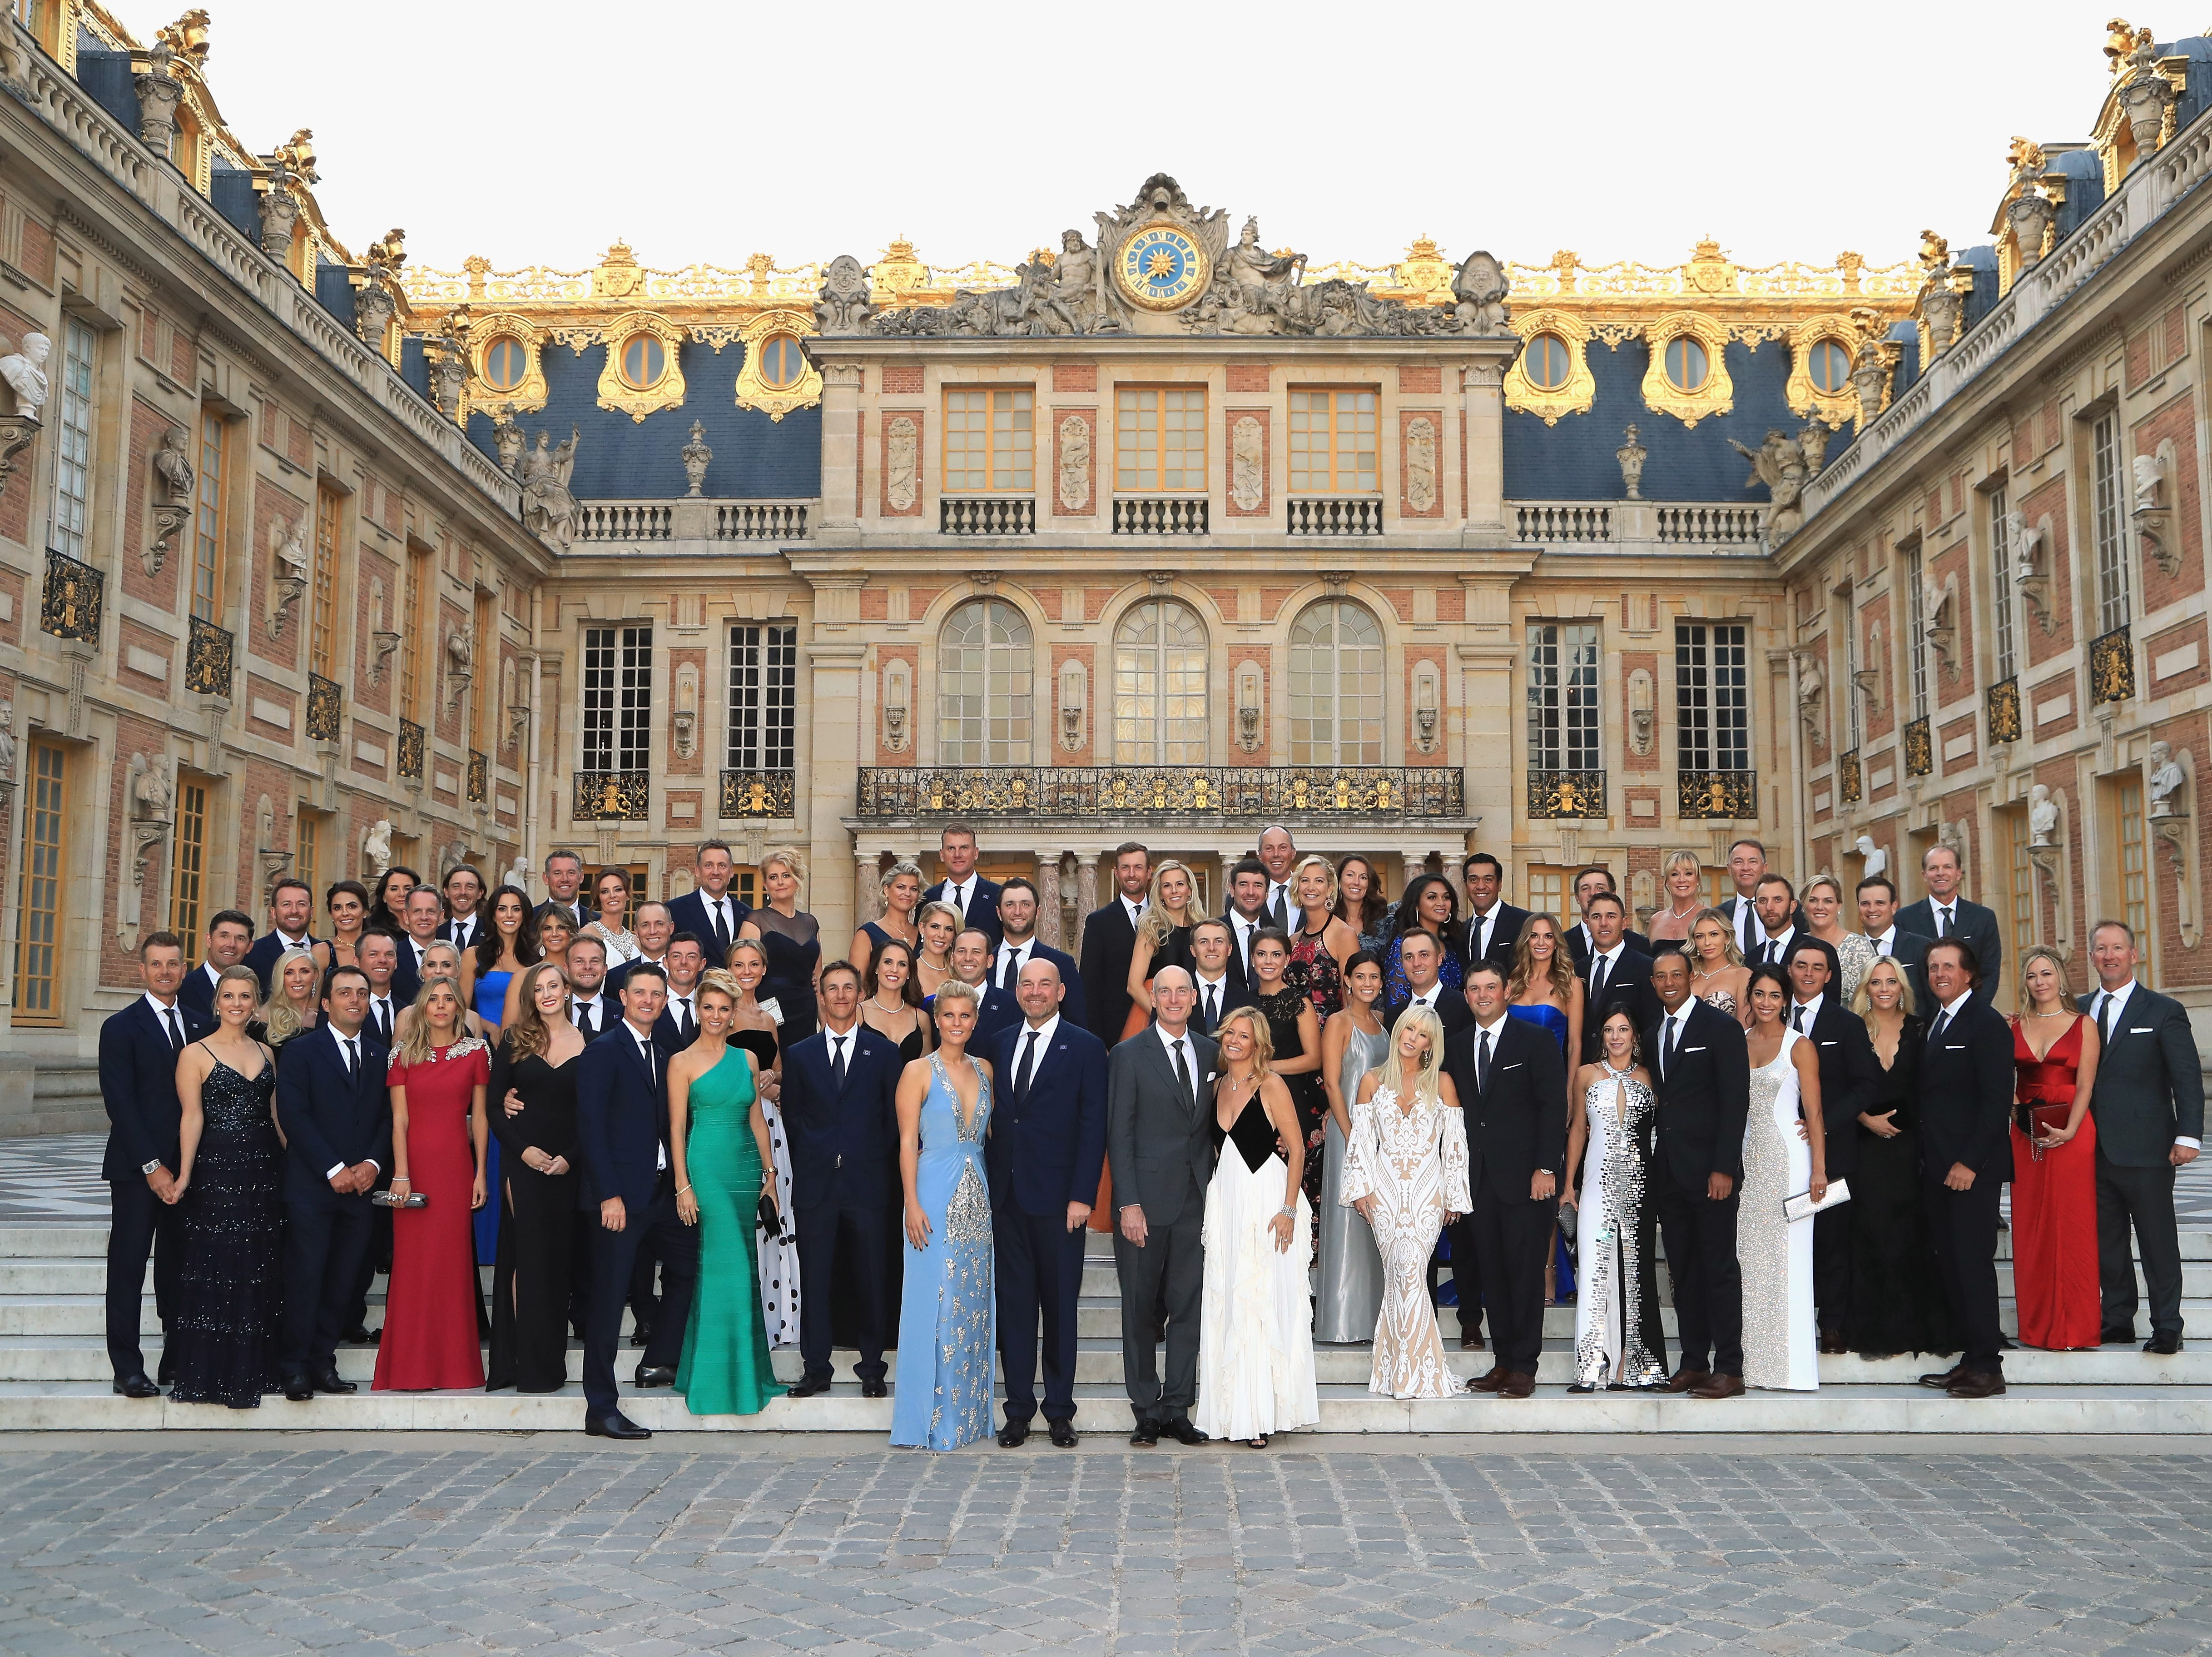 The players of Team Europe and Team USA pose with their partners on the steps of the Palace of Versailles prior to the Ryder Cup gala Sept. 26.